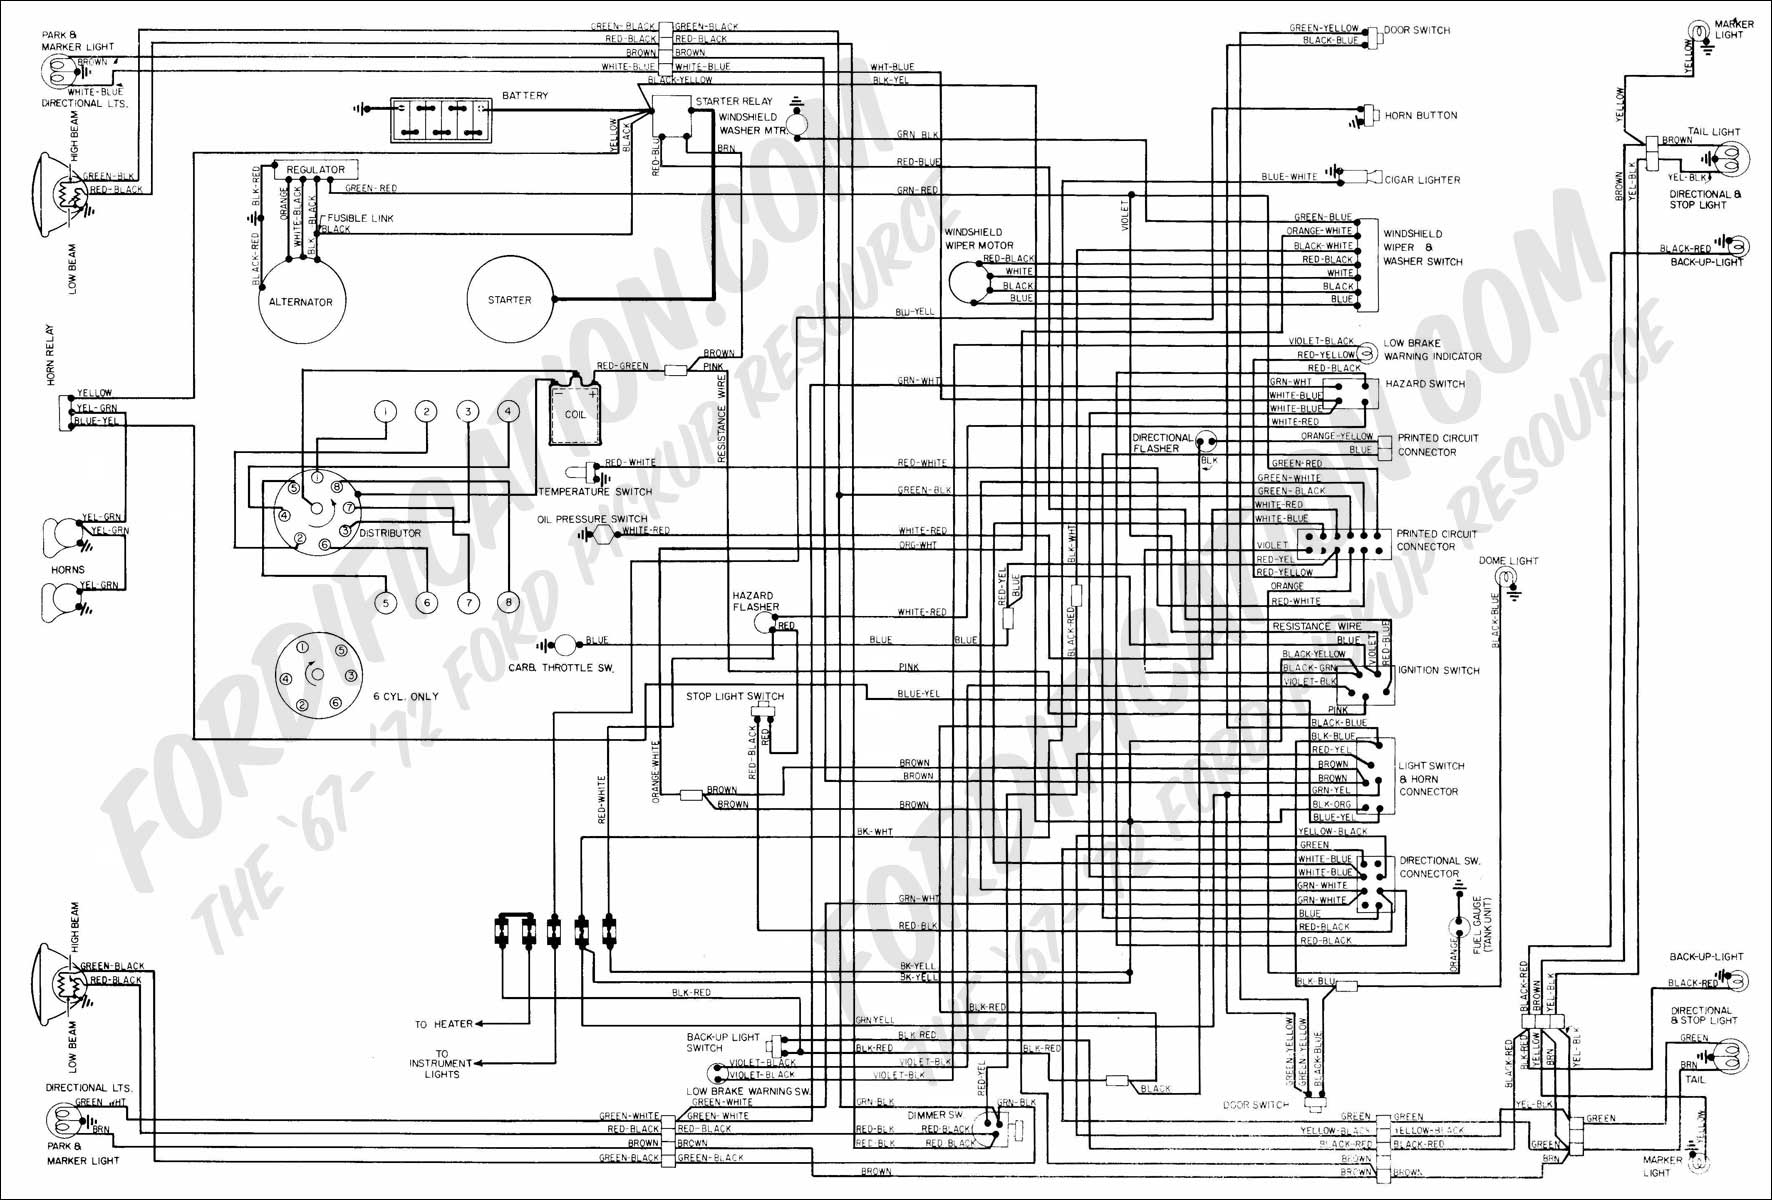 Dodge 5 9 Engine Diagram in addition RepairGuideContent moreover 90 Ford 2 3l Engine Diagram moreover 1a5in 2003 Ford Ranger A C Not Working  pressor Clutch Not moreover Ford 8 Rear End Diagram. on 1990 ford ranger fuse box diagram